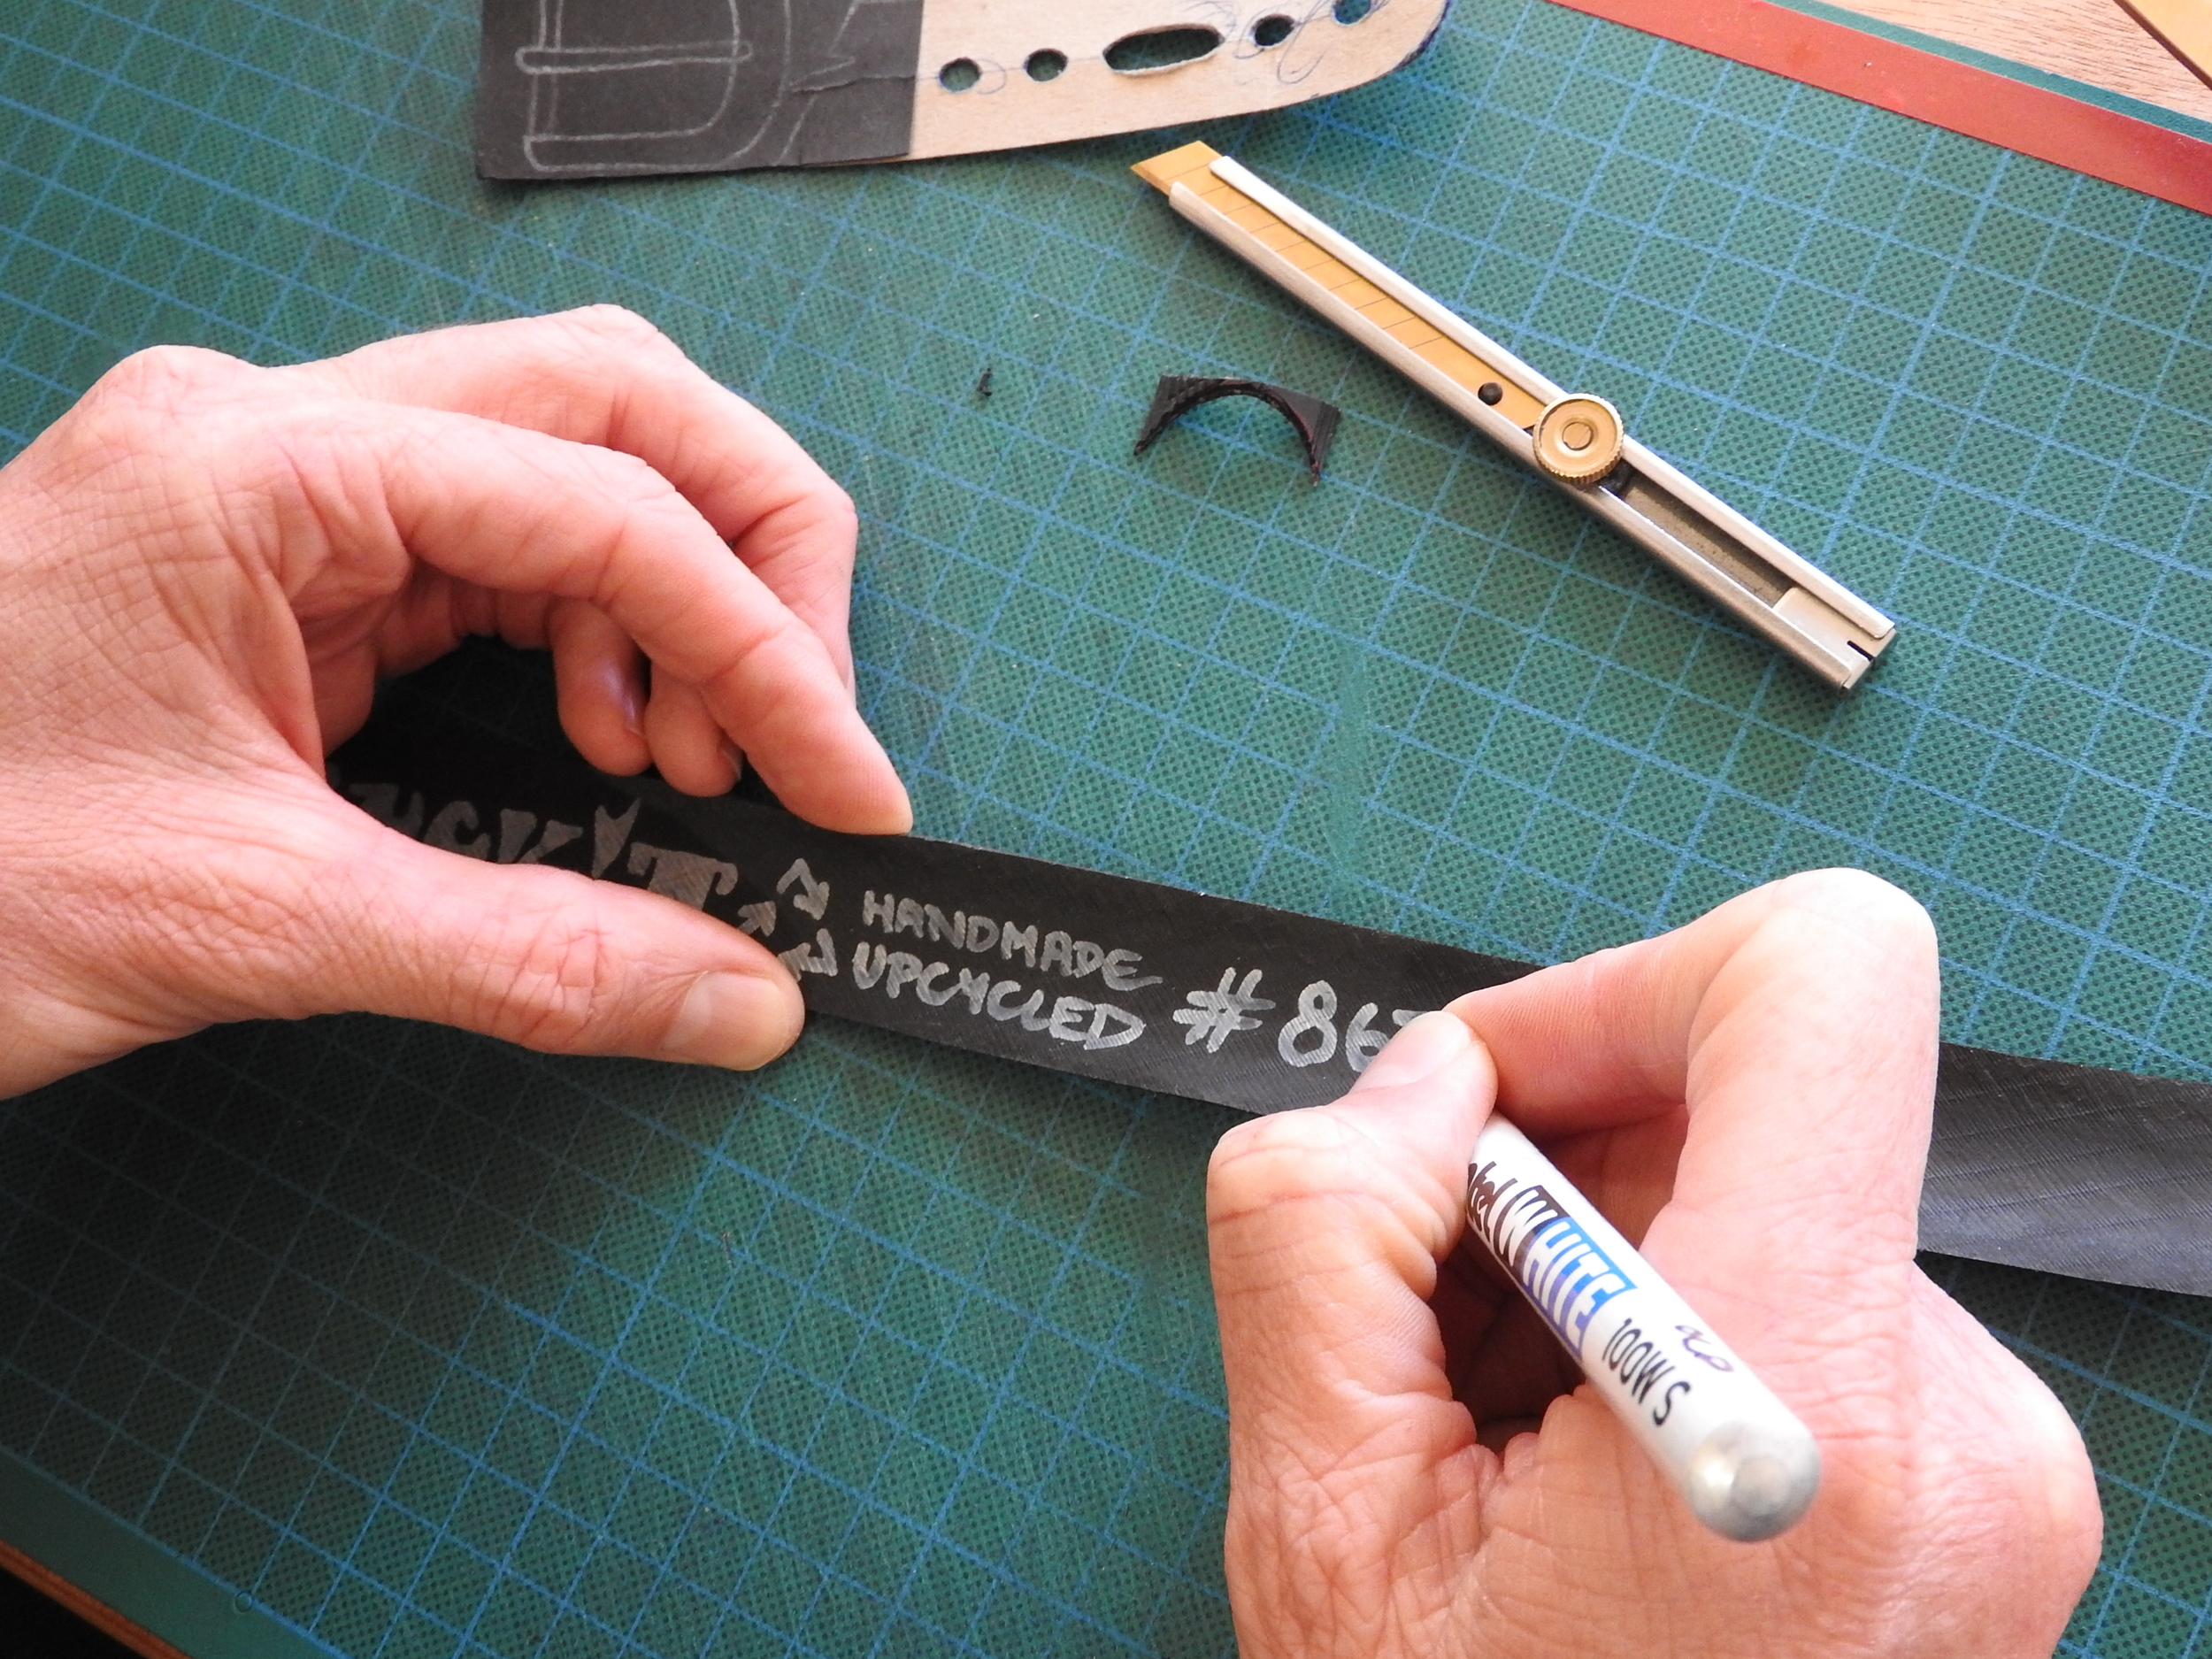 Every belt is labelled and numbered by hand.